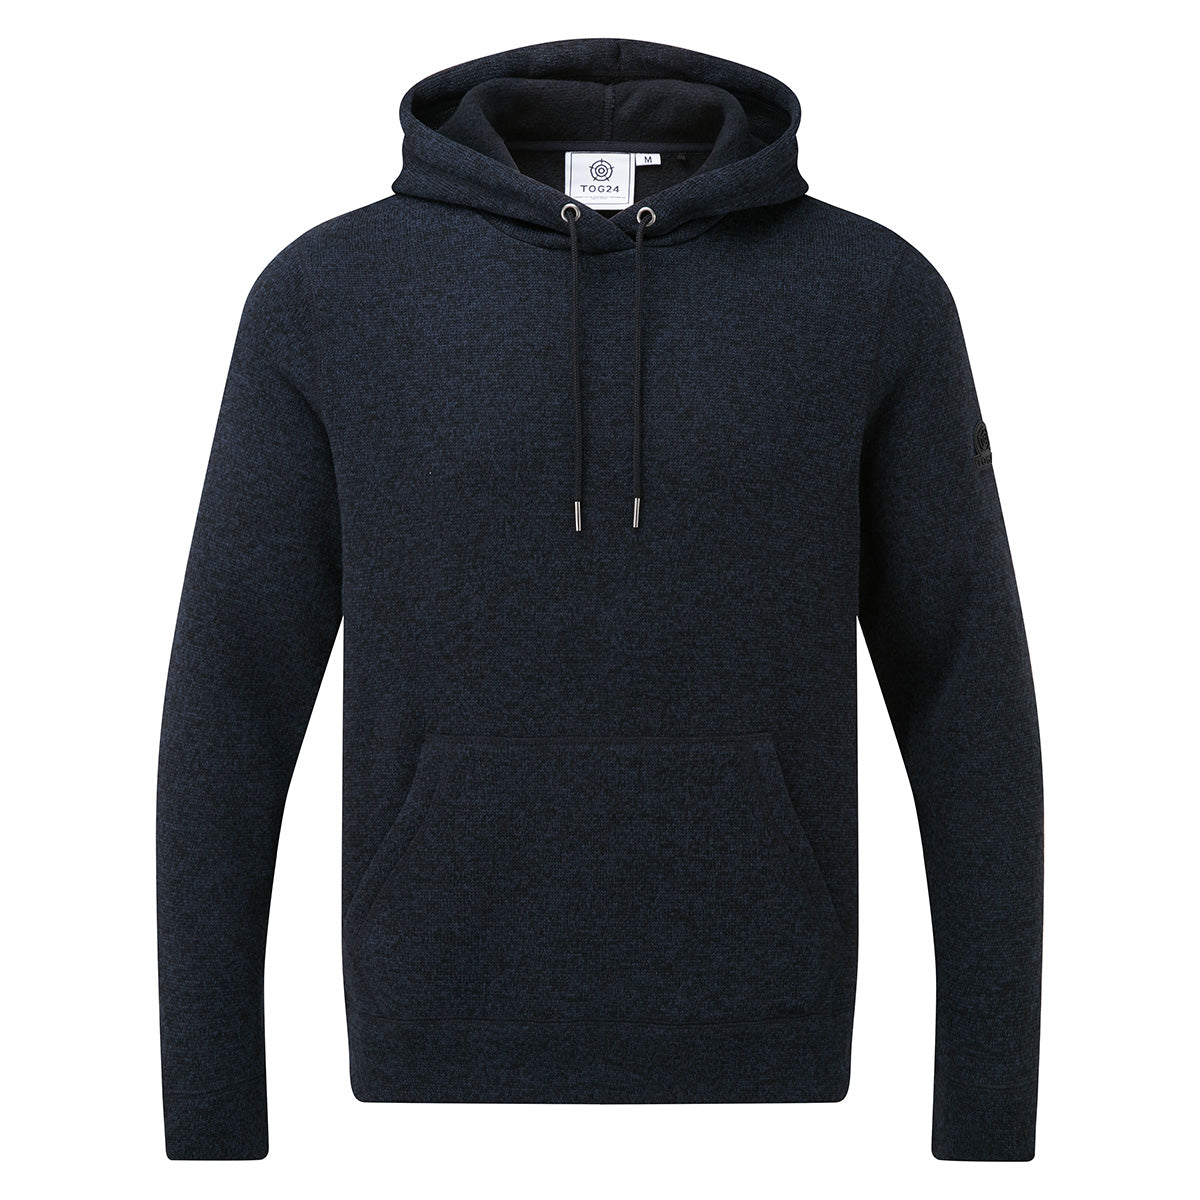 Chilton Mens Knitlook Fleece Hoody - Dark Indigo Marl image 4